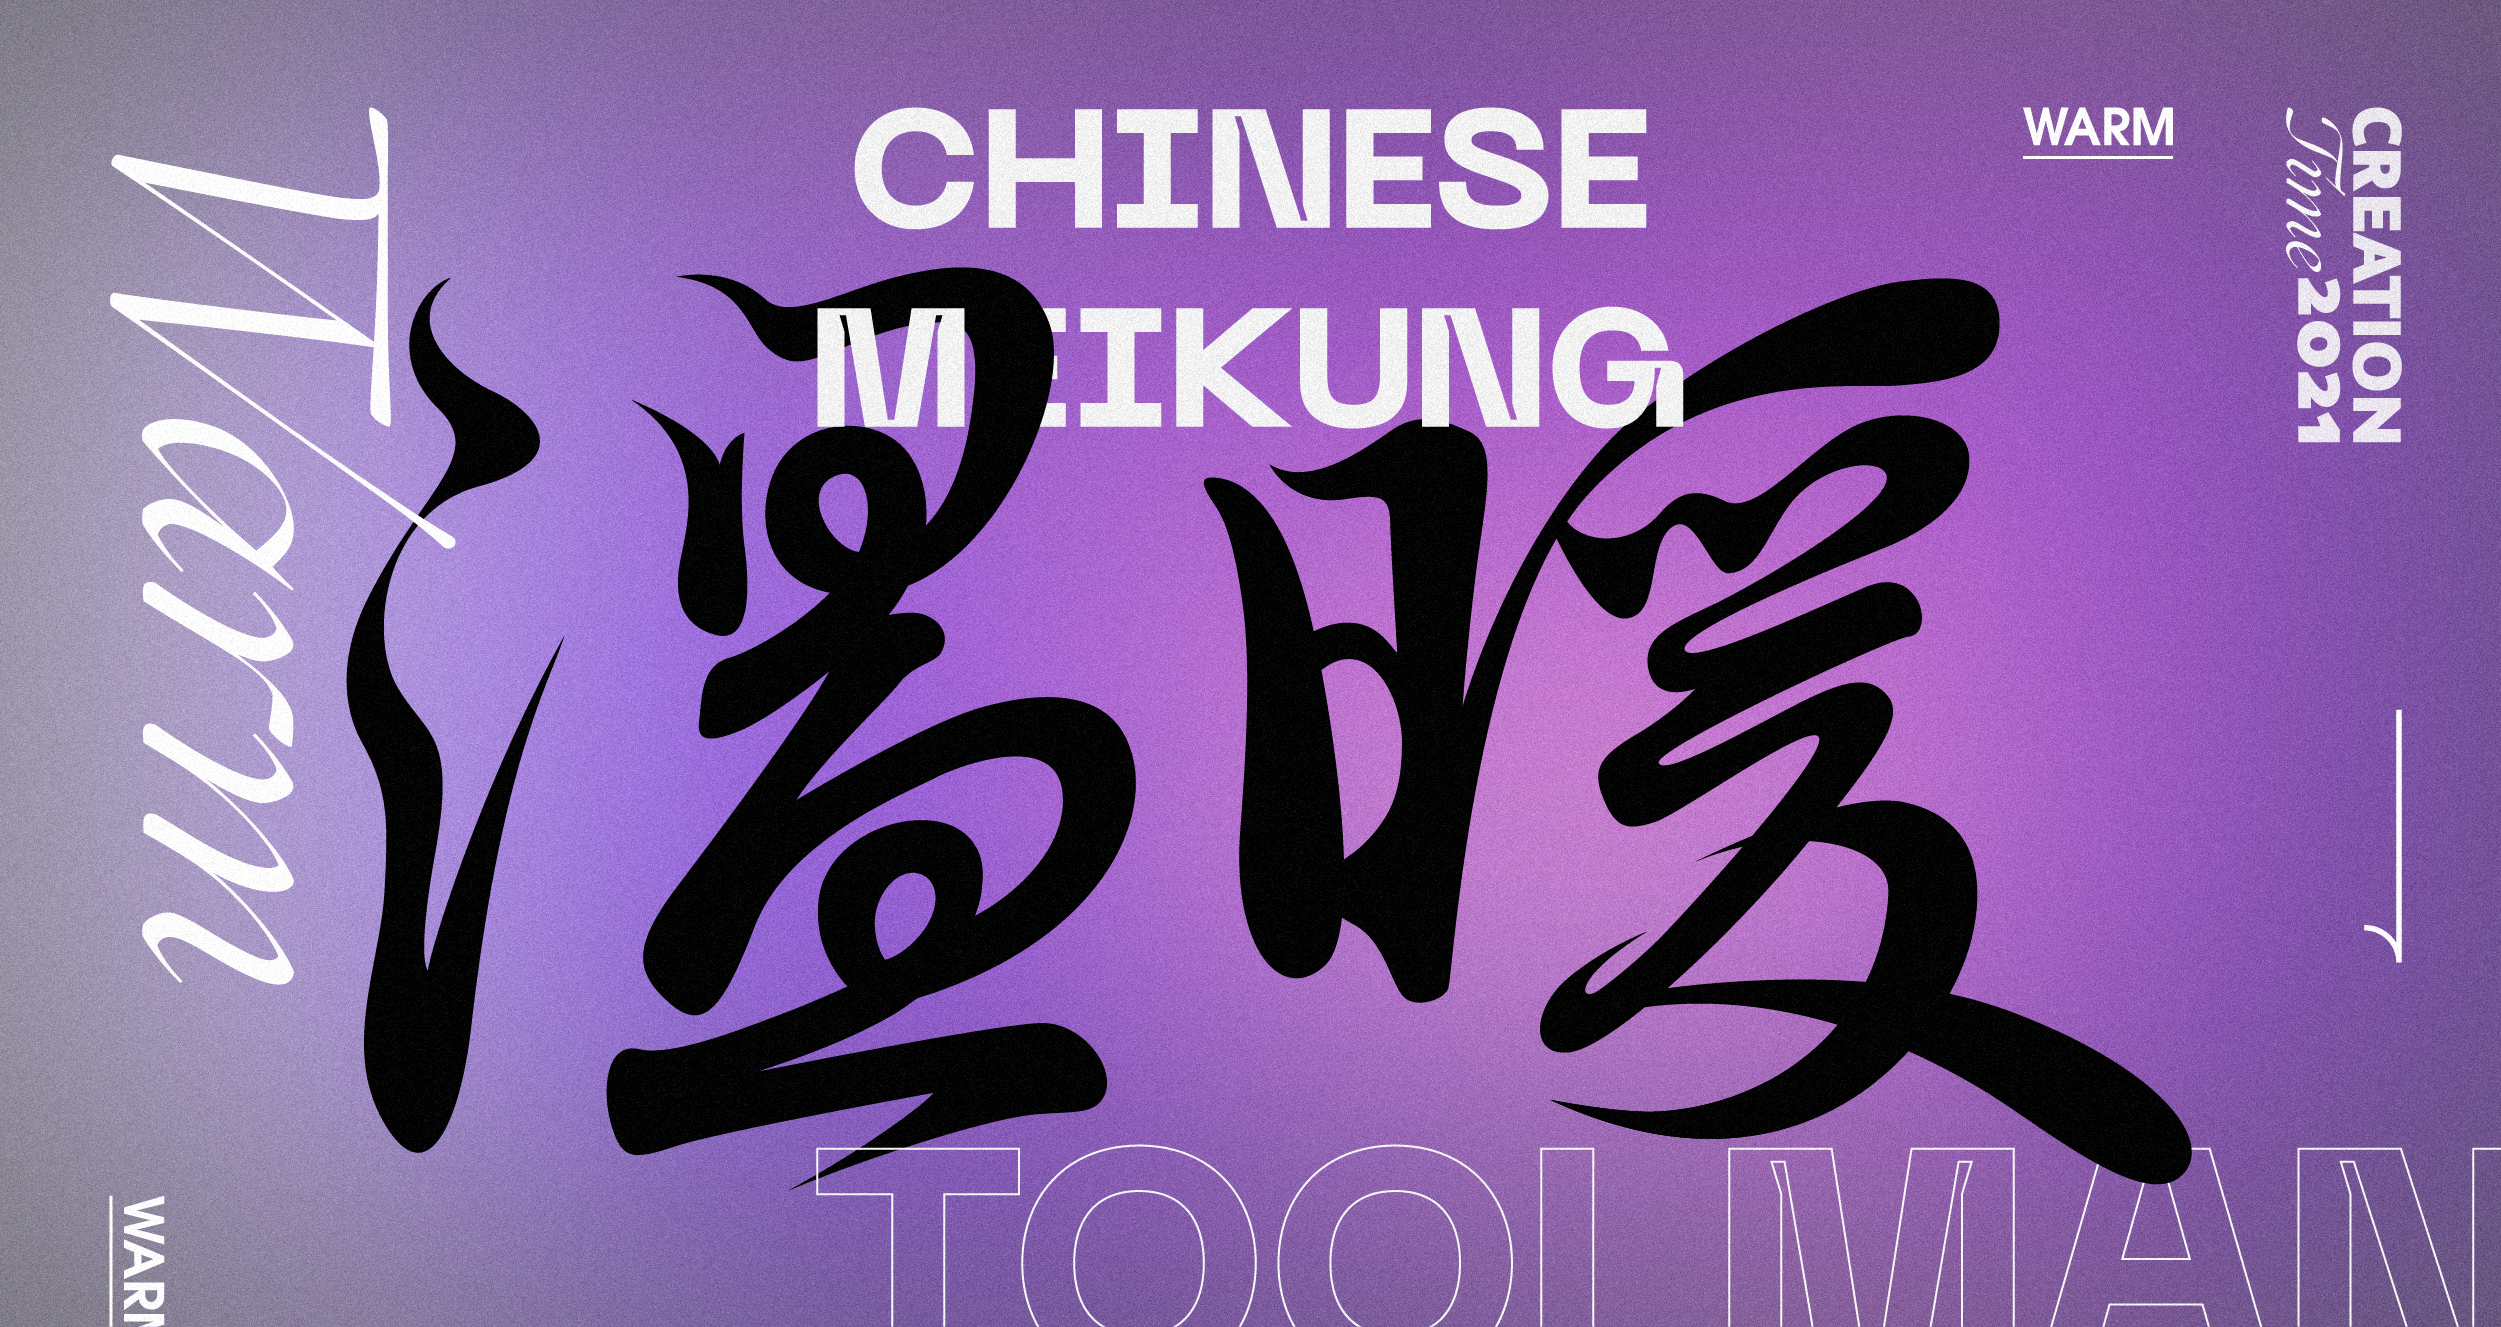 13P Collection of the latest Chinese font design schemes in 2021 #.98